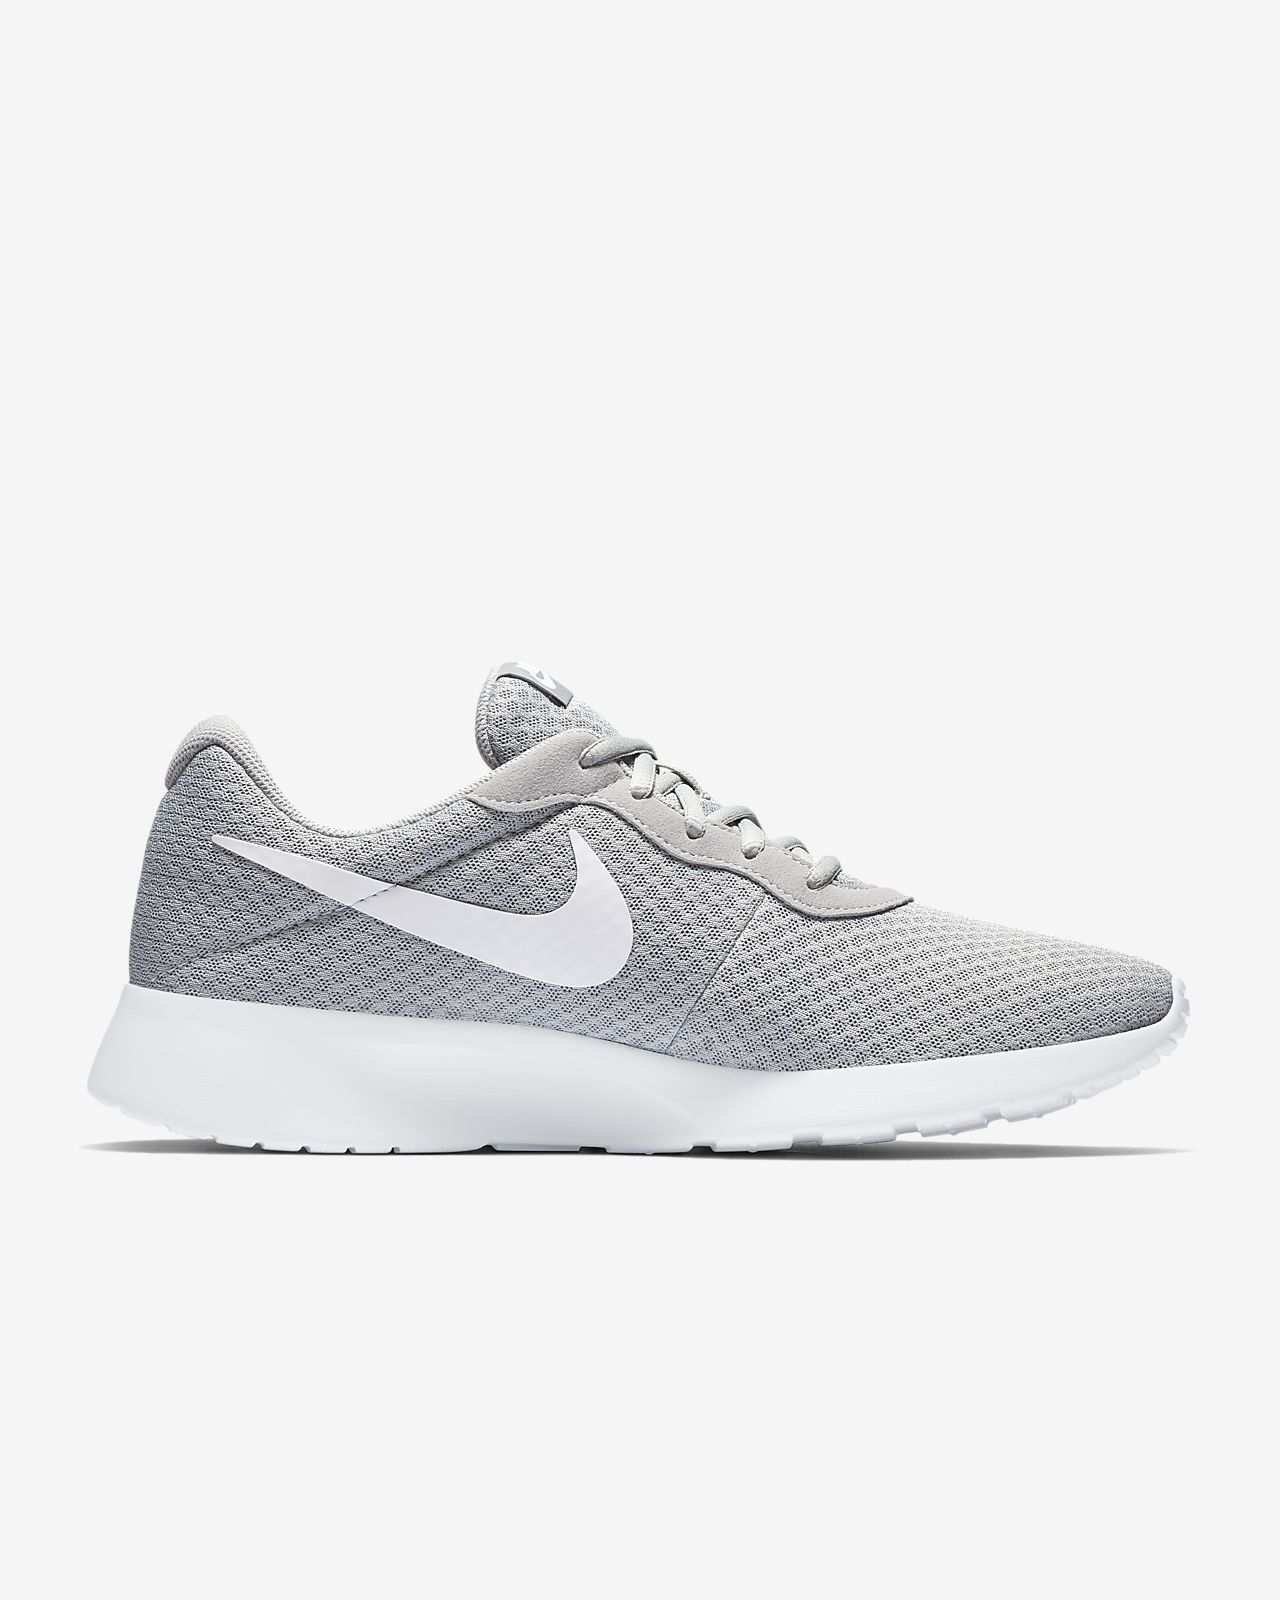 Nike TANJUN Black White Fast delivery | Spartoo Europe